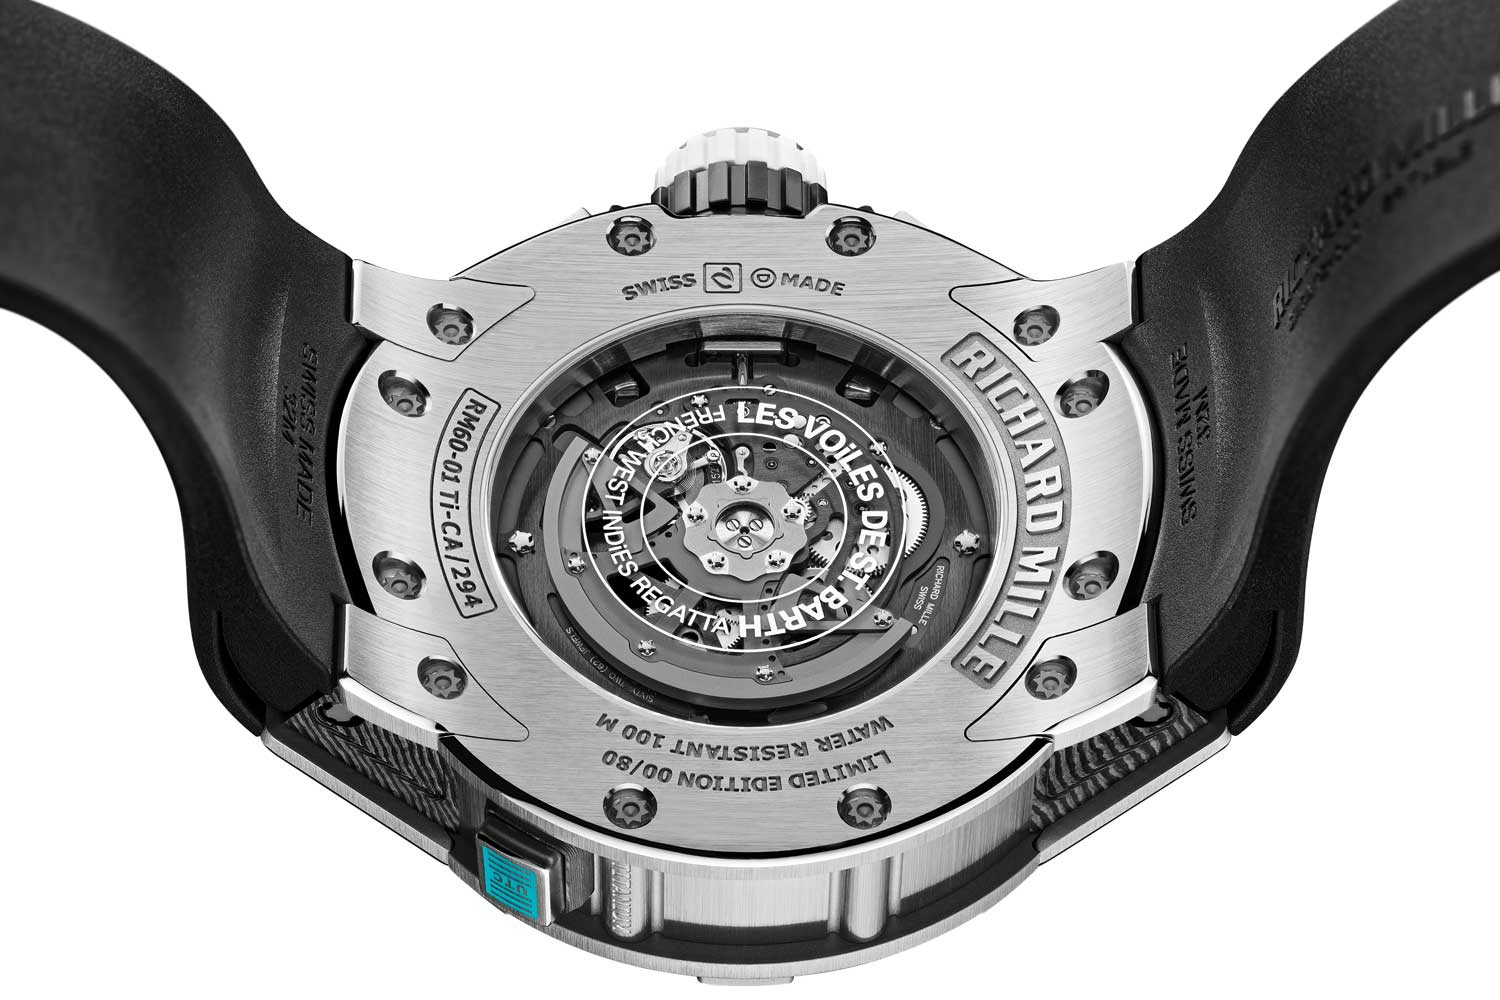 Powered by the automatic-winding caliber RMAC2, the RM 60-01 delivers a power reserve of 55 hours